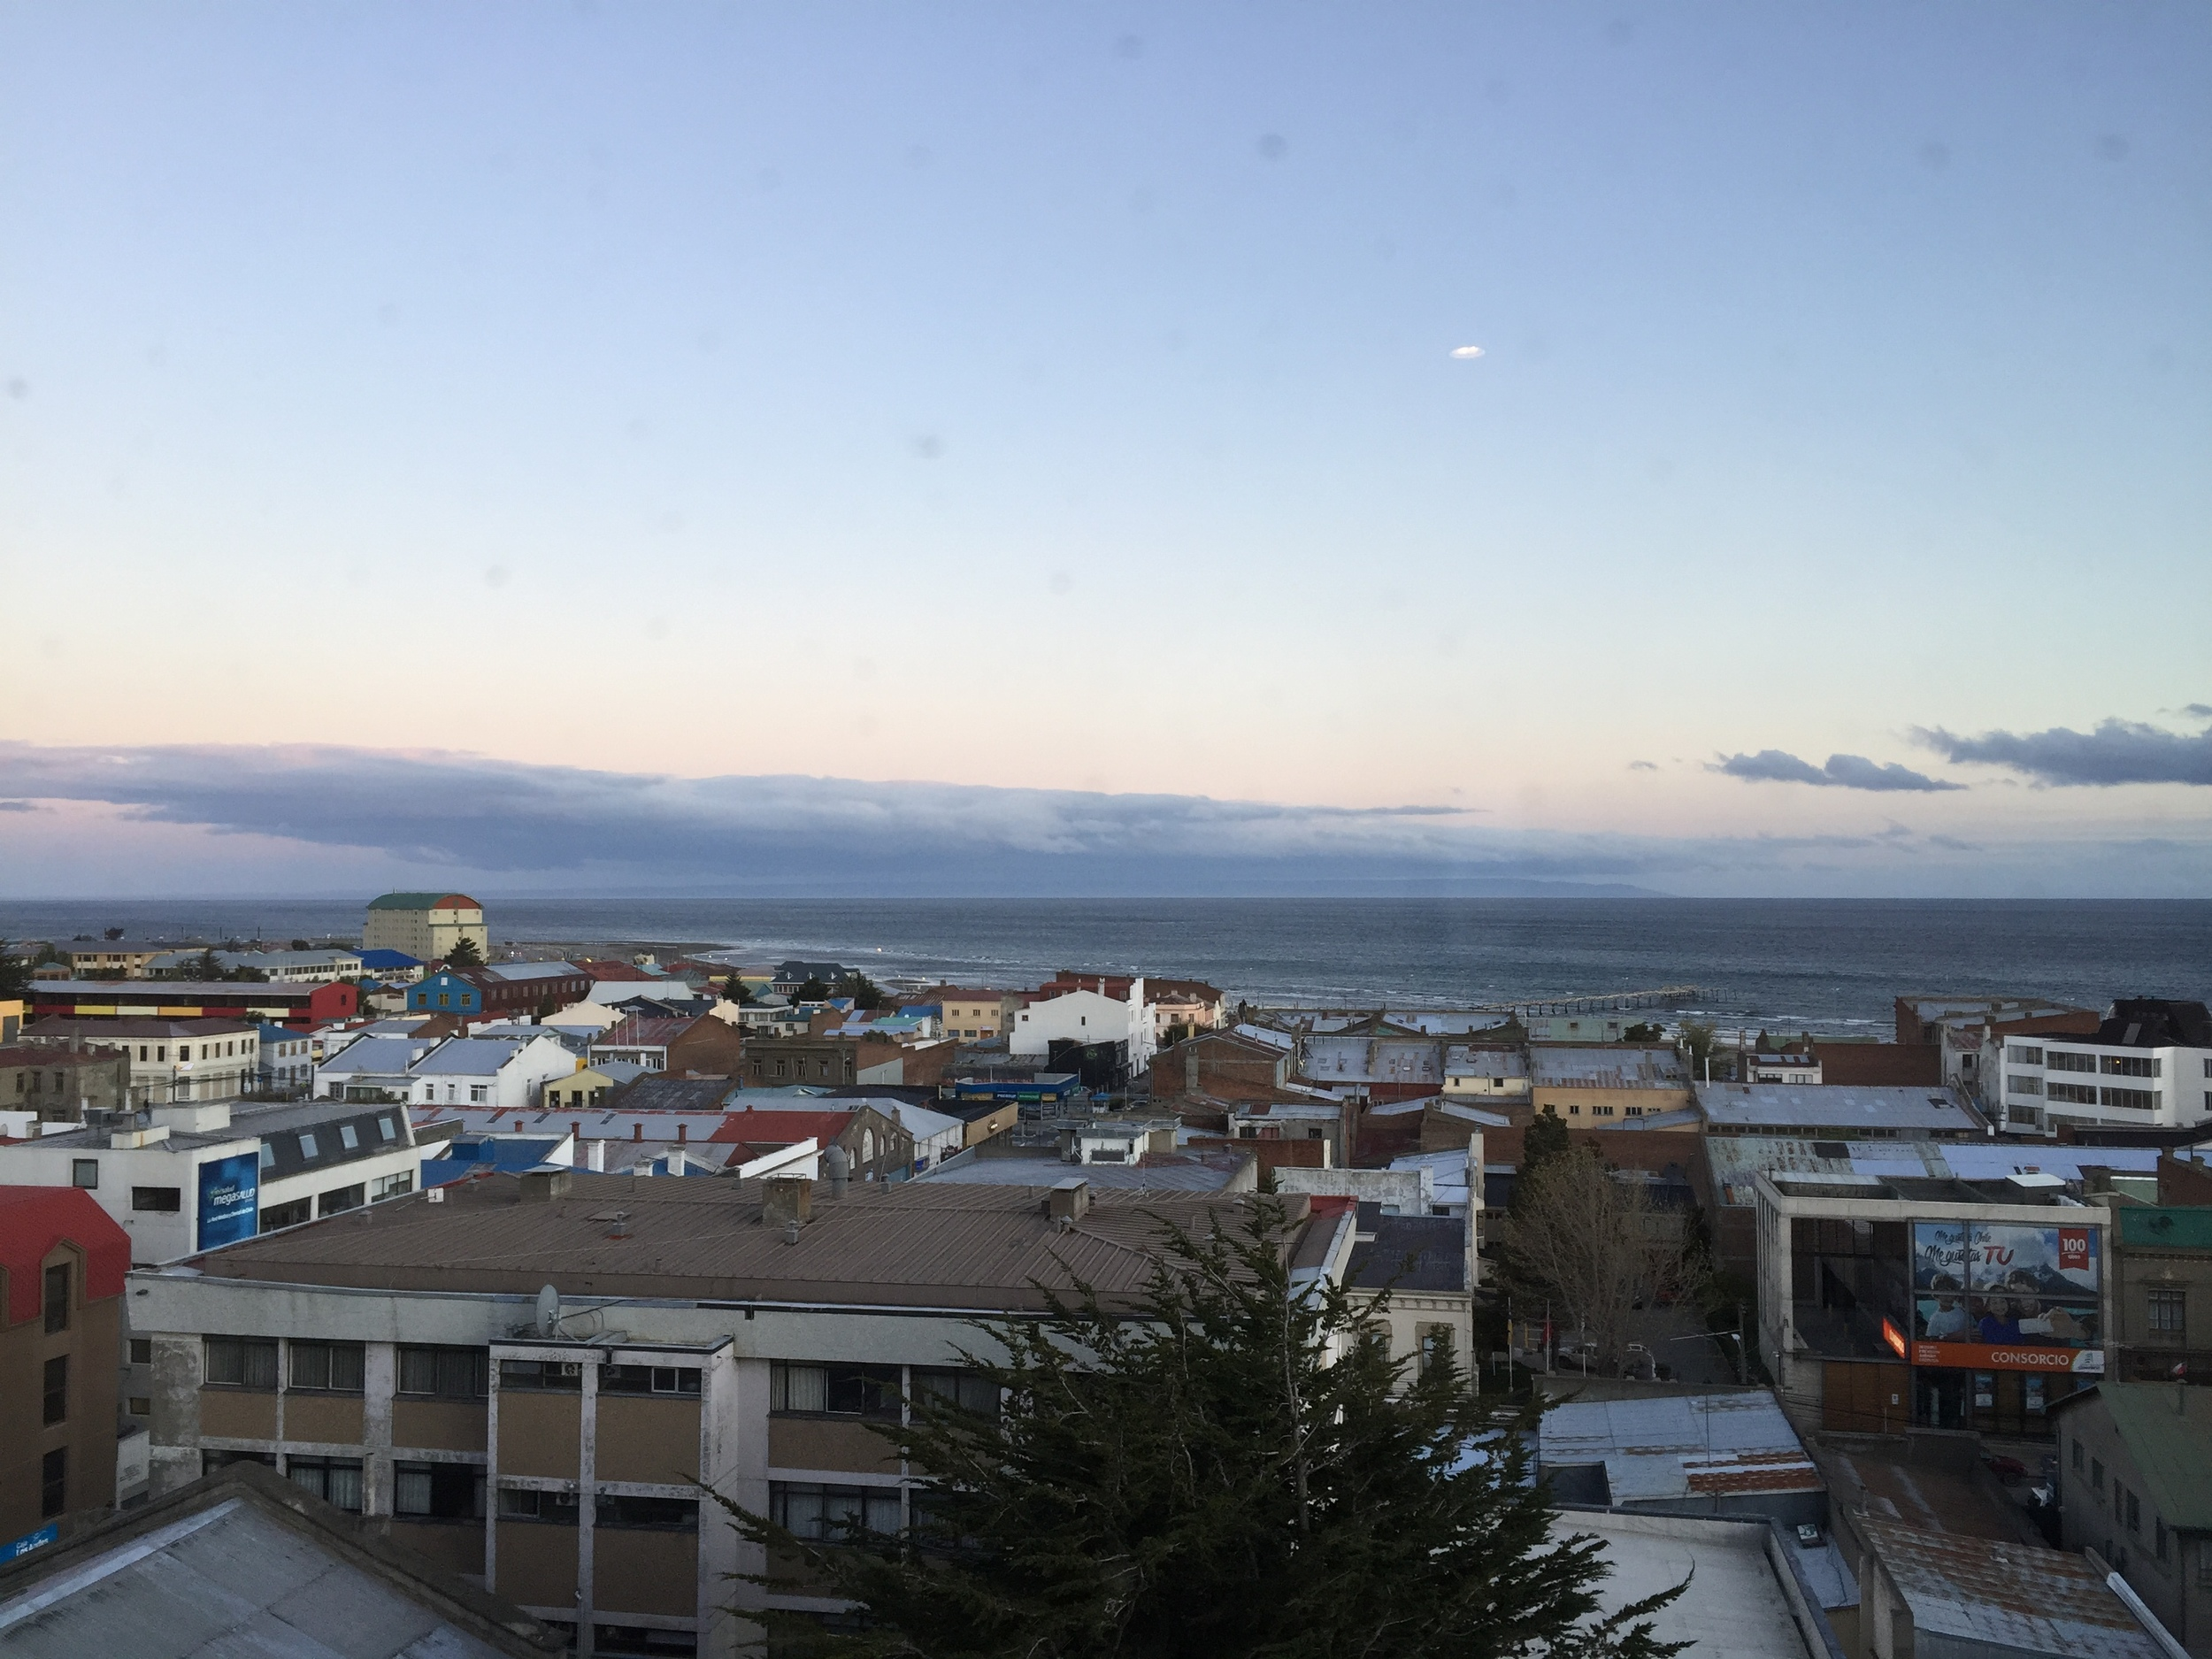 View from my hotel window in Punta Arenas, looking out at the Straits of Magellan, Chile, Patagonia.